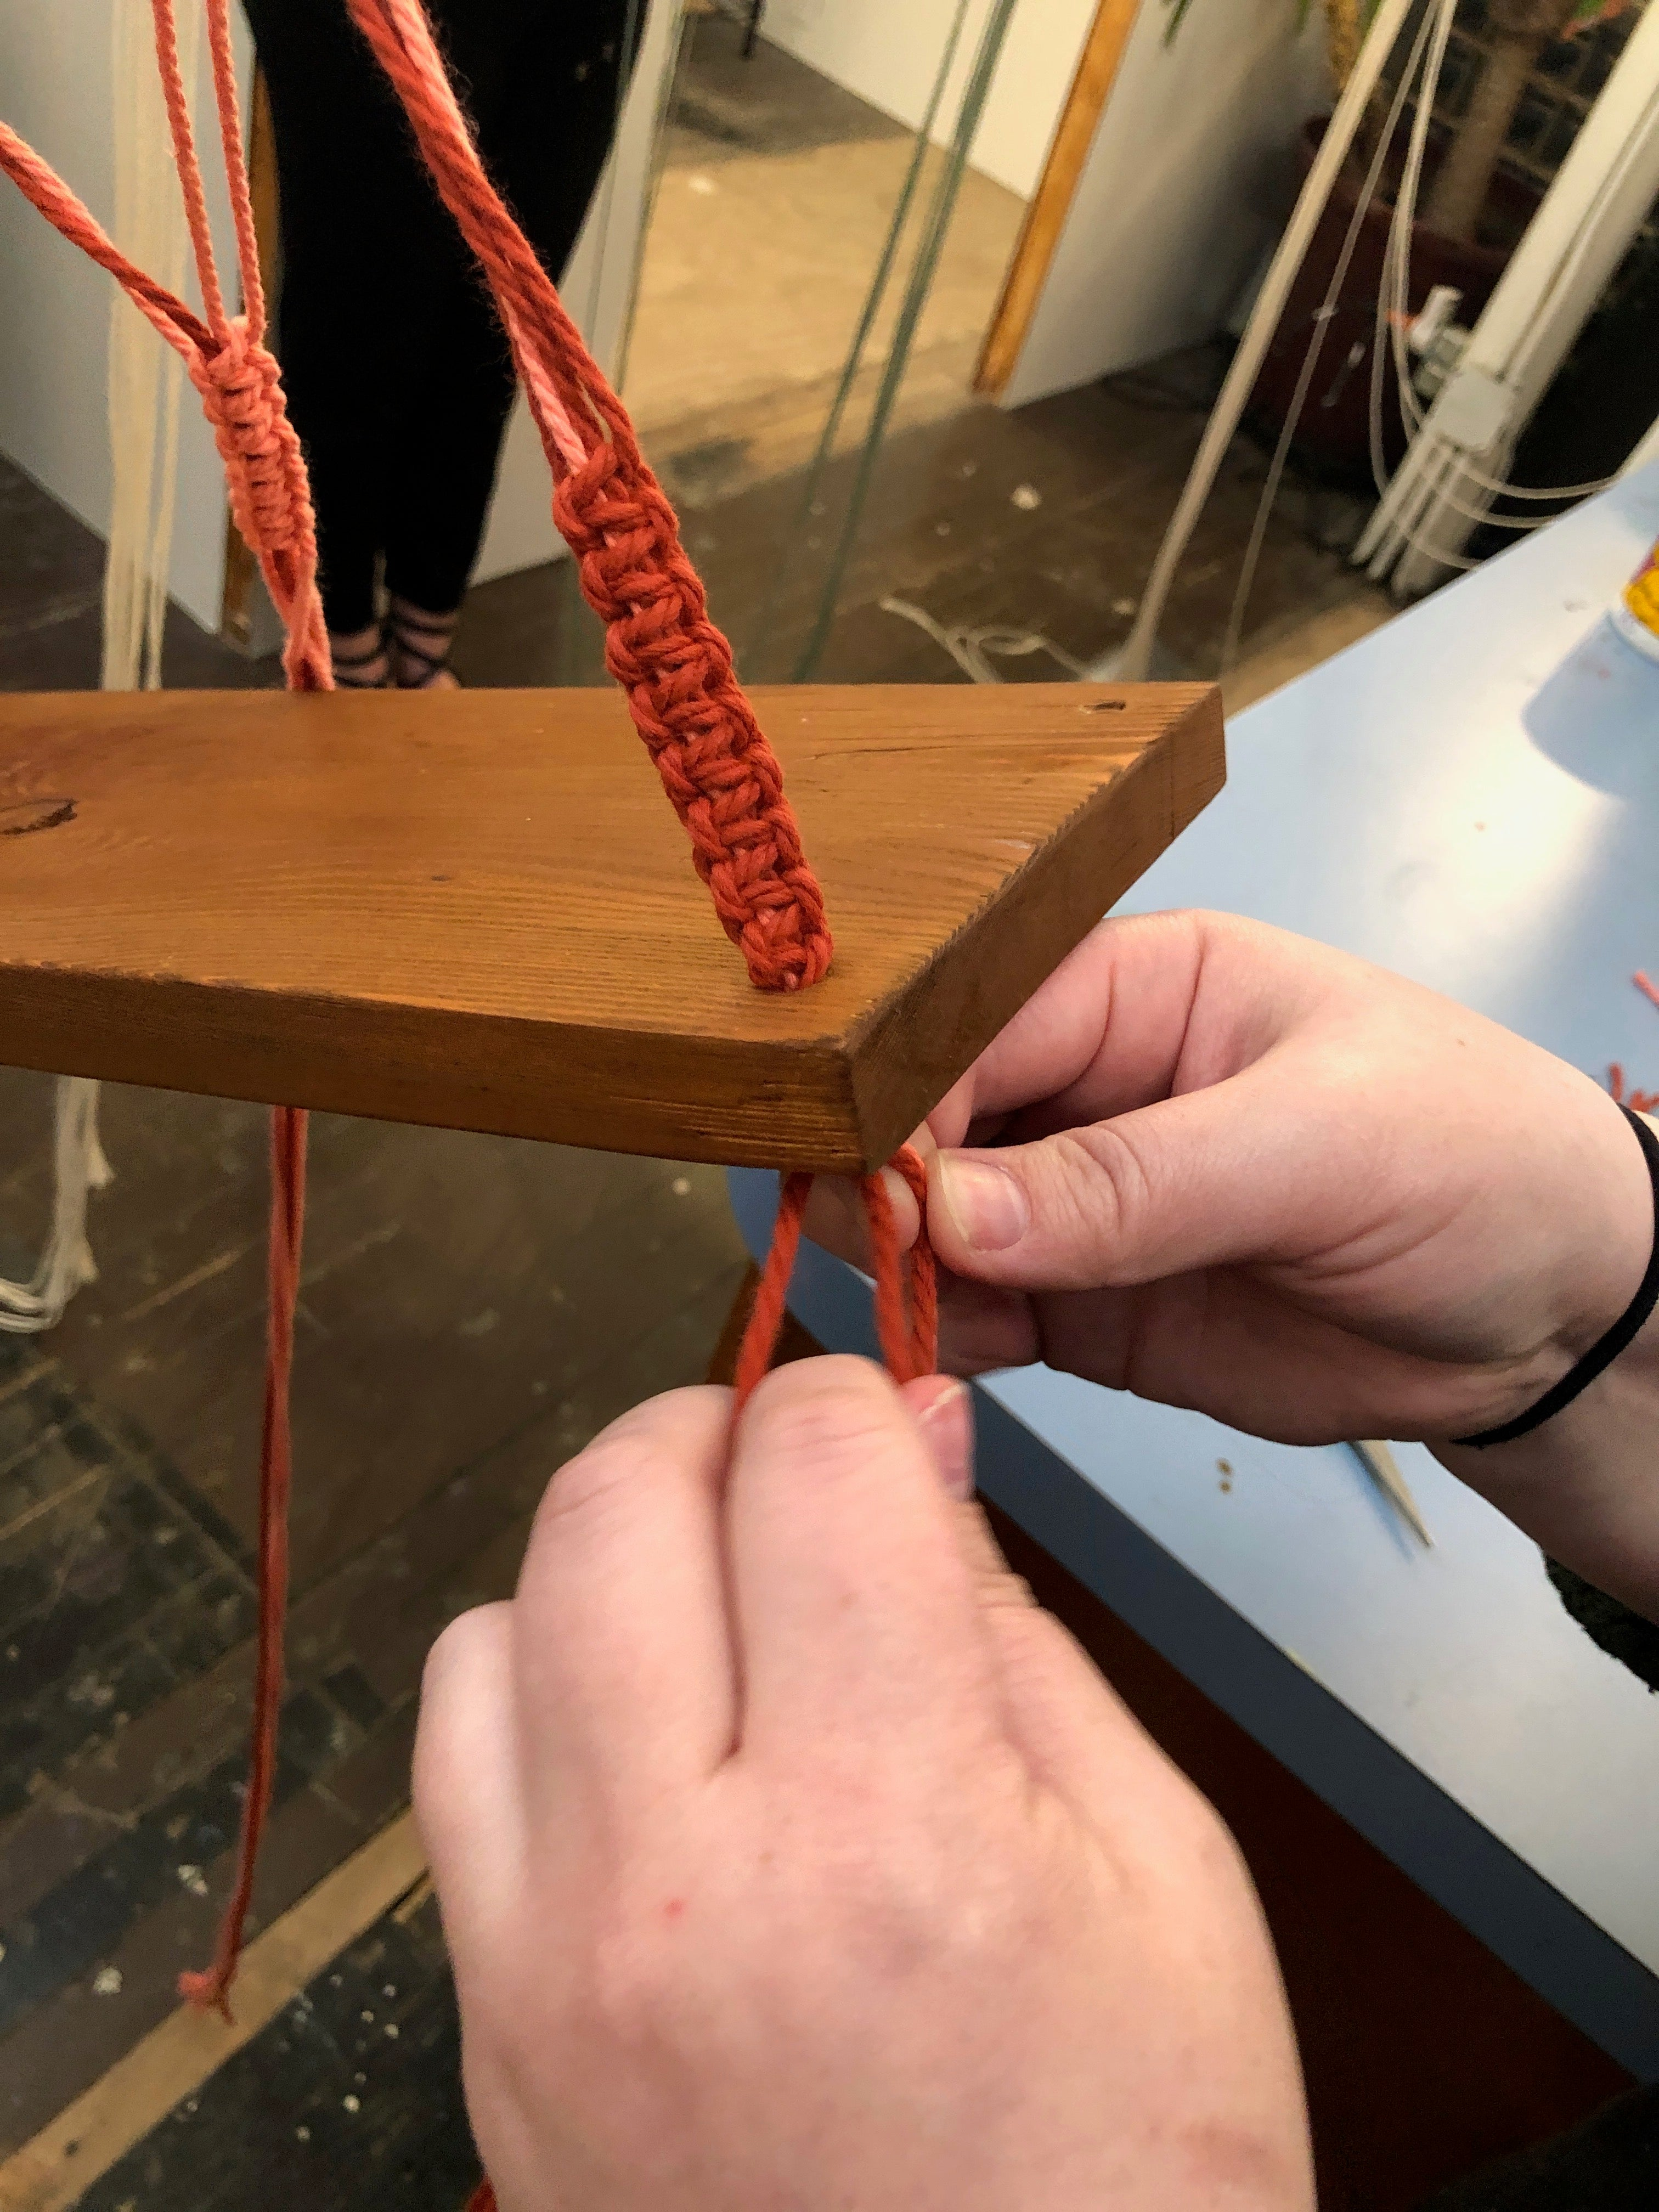 Woodworking + Macrame Workshop: Decorative Hanging Shelves on Sunday August 25 at 1pm